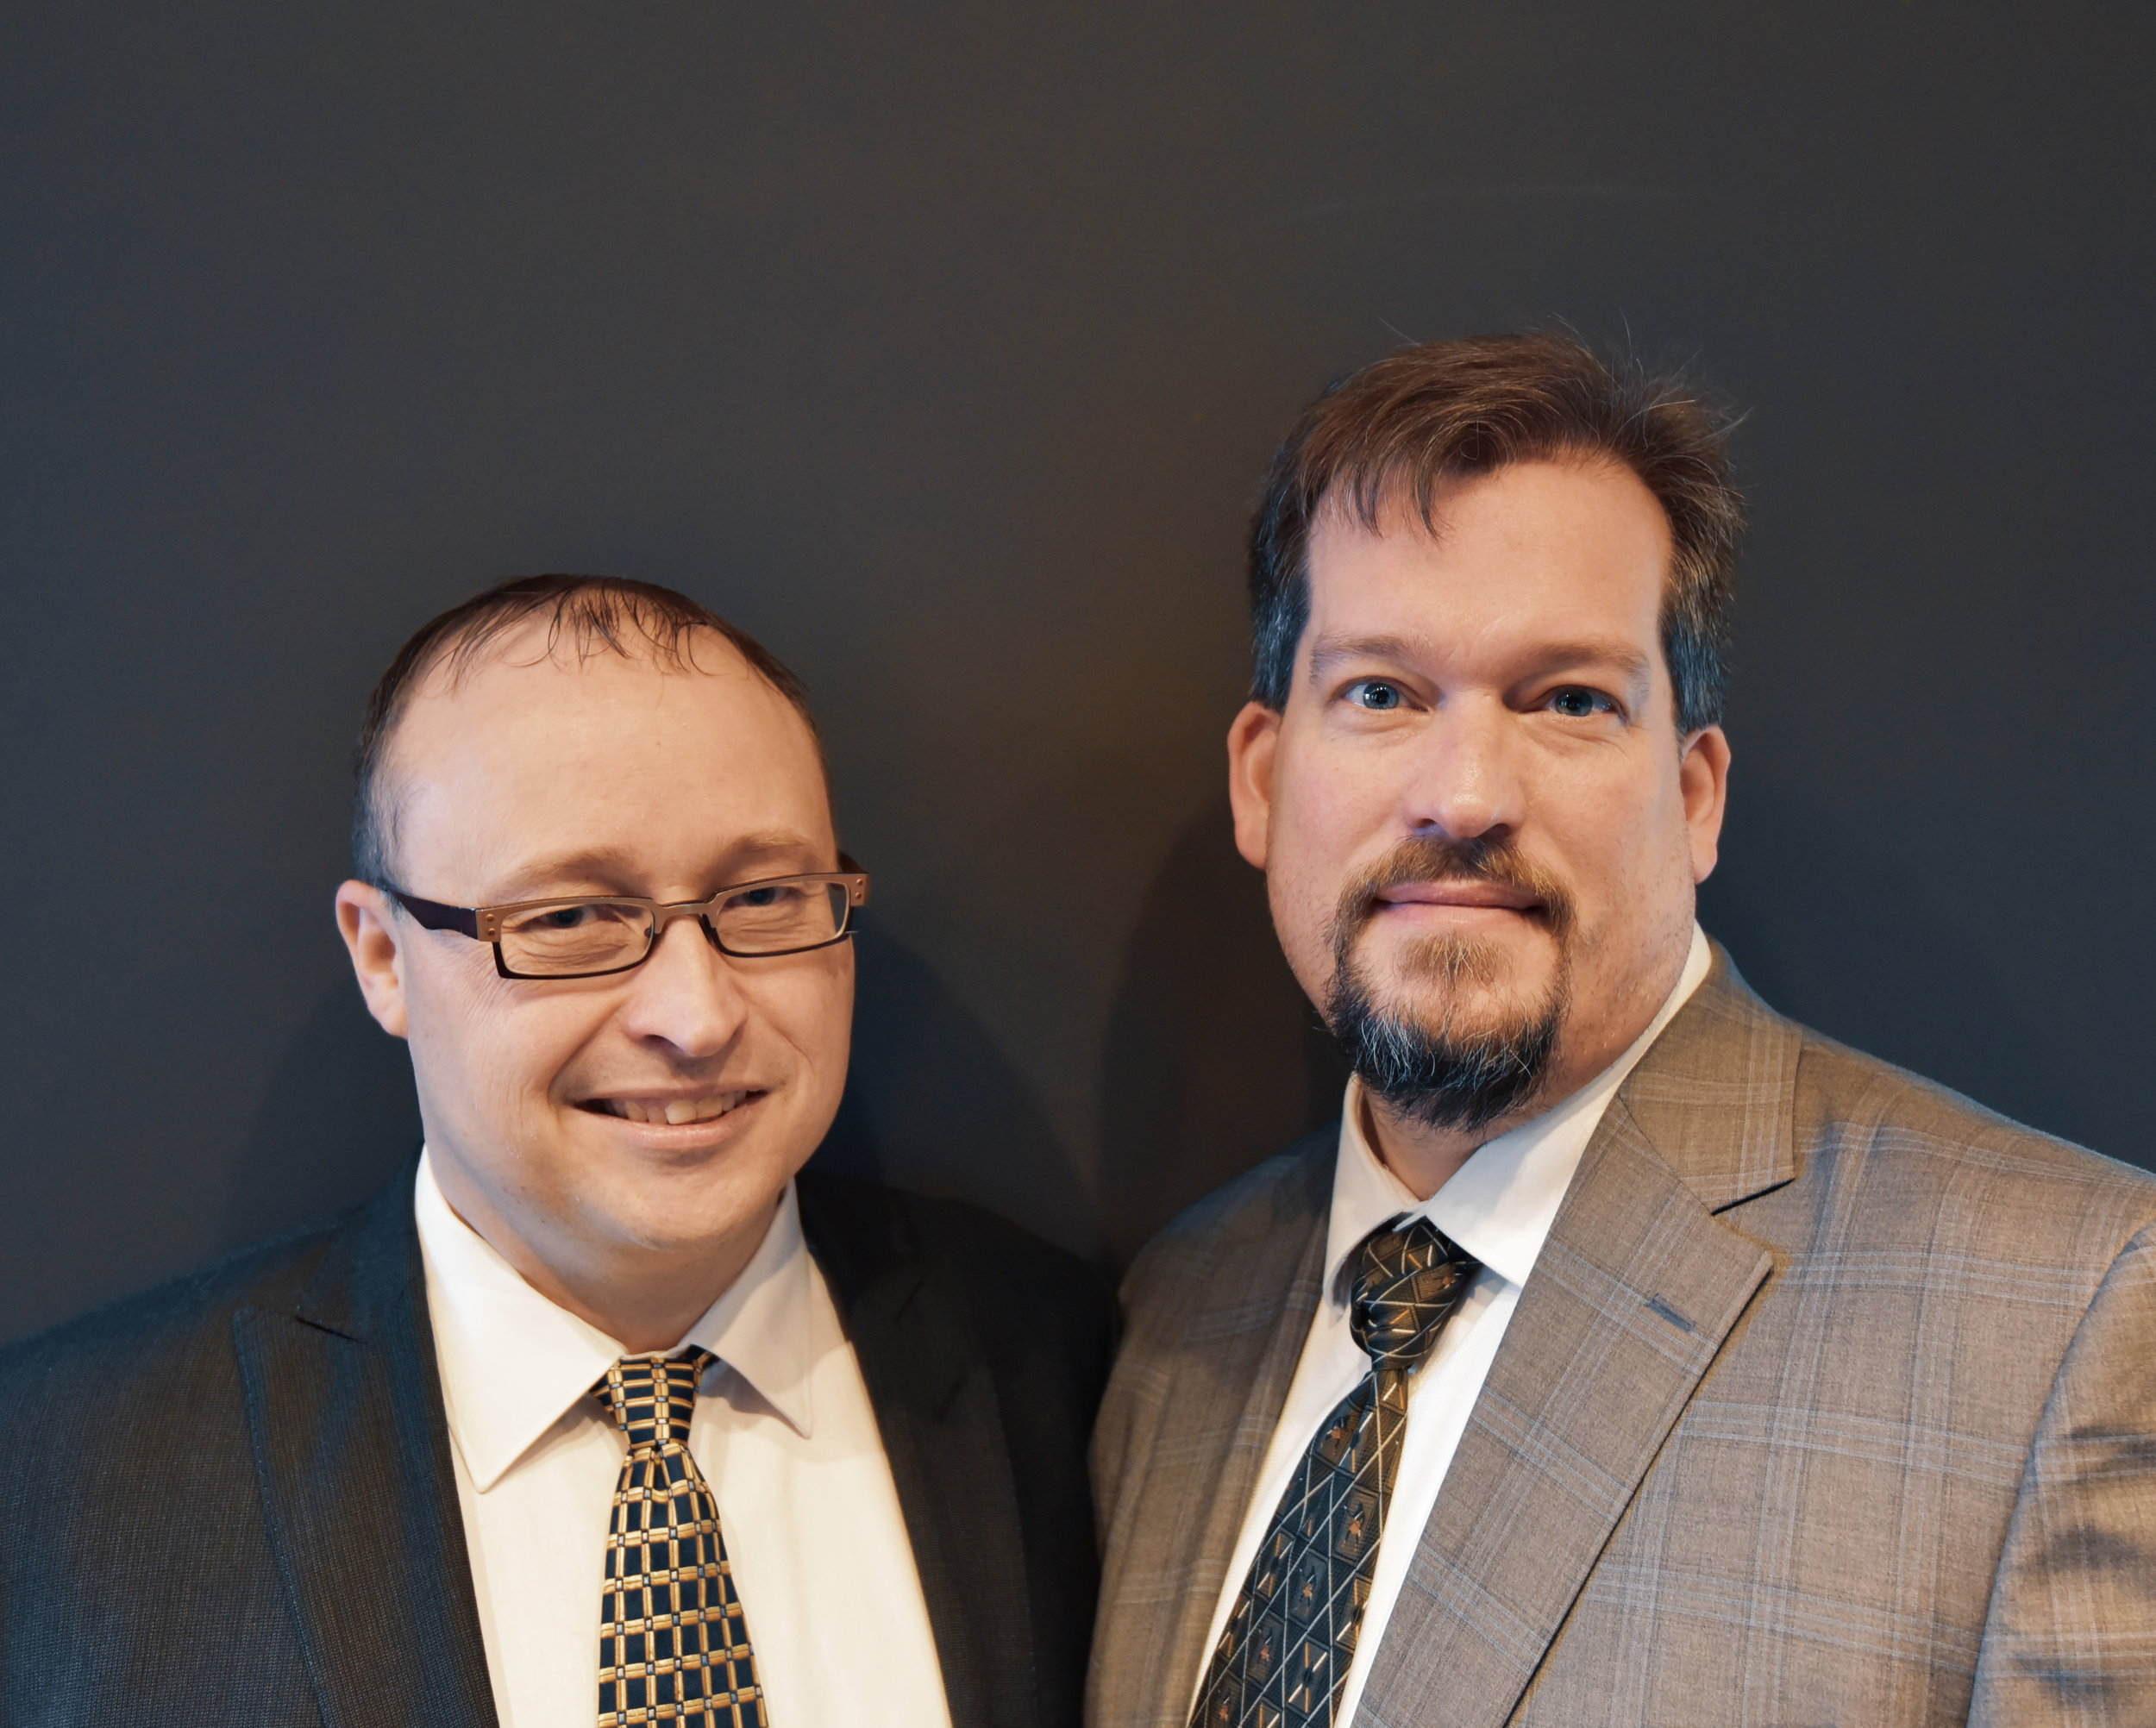 HD Law Group was created in January 2015 - Ryan Hager and Jason Demers, founders of HD Law Group